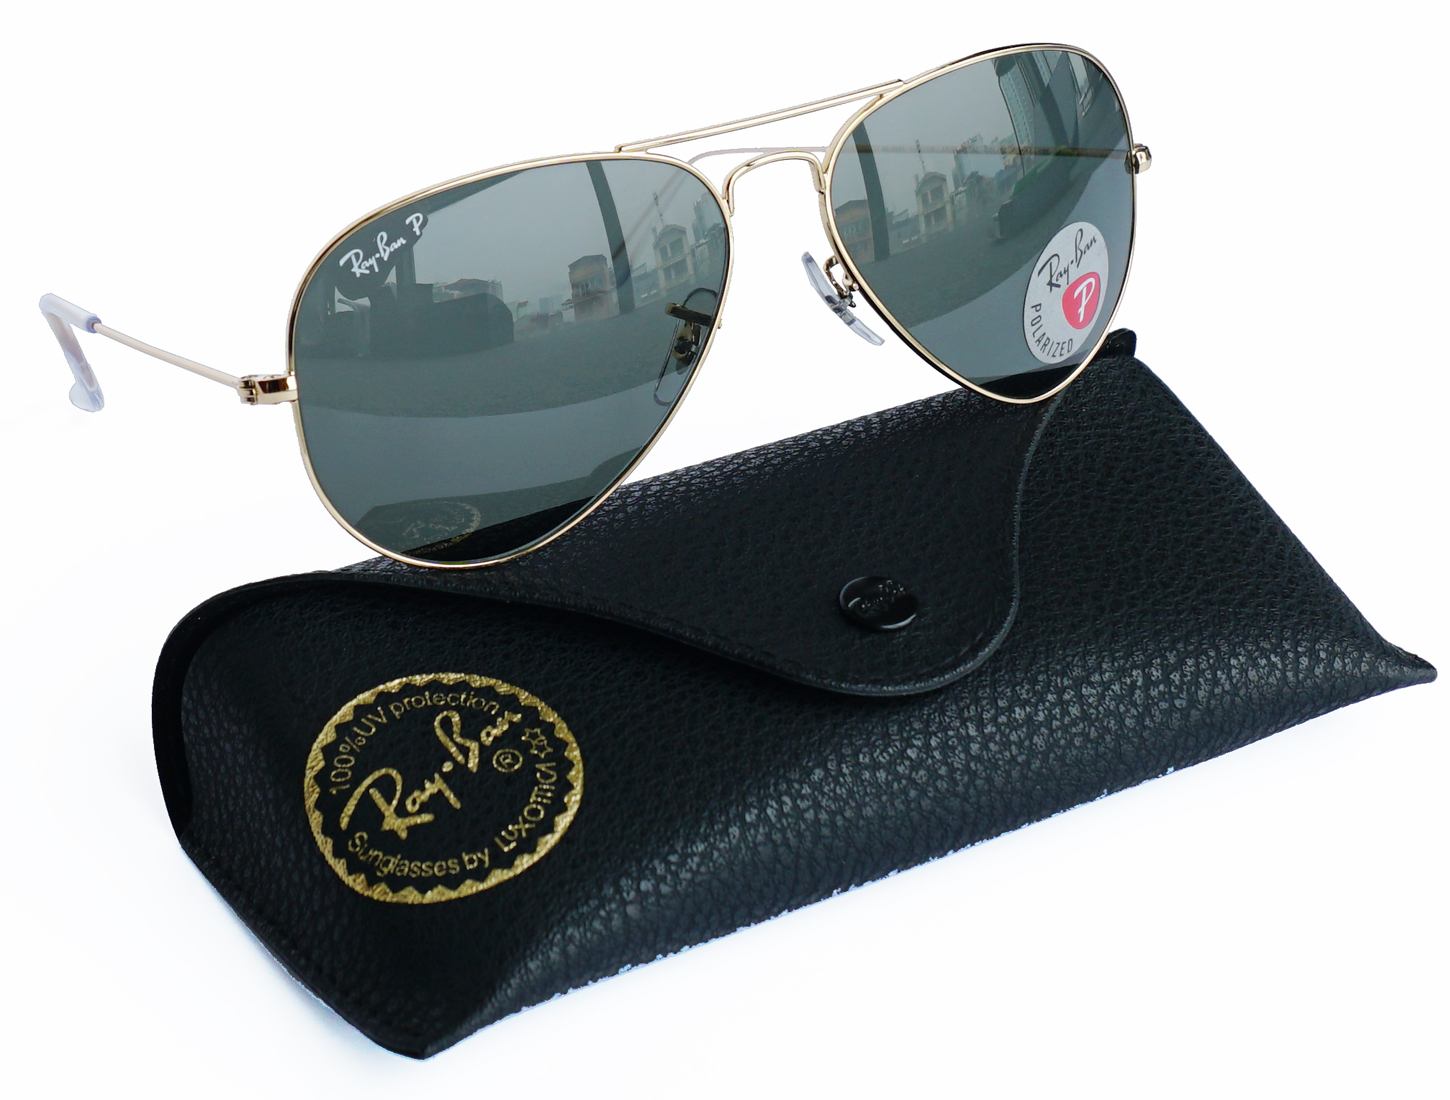 RB 3025 Large metal gold green polarized - RB 3025 L 001/58 P